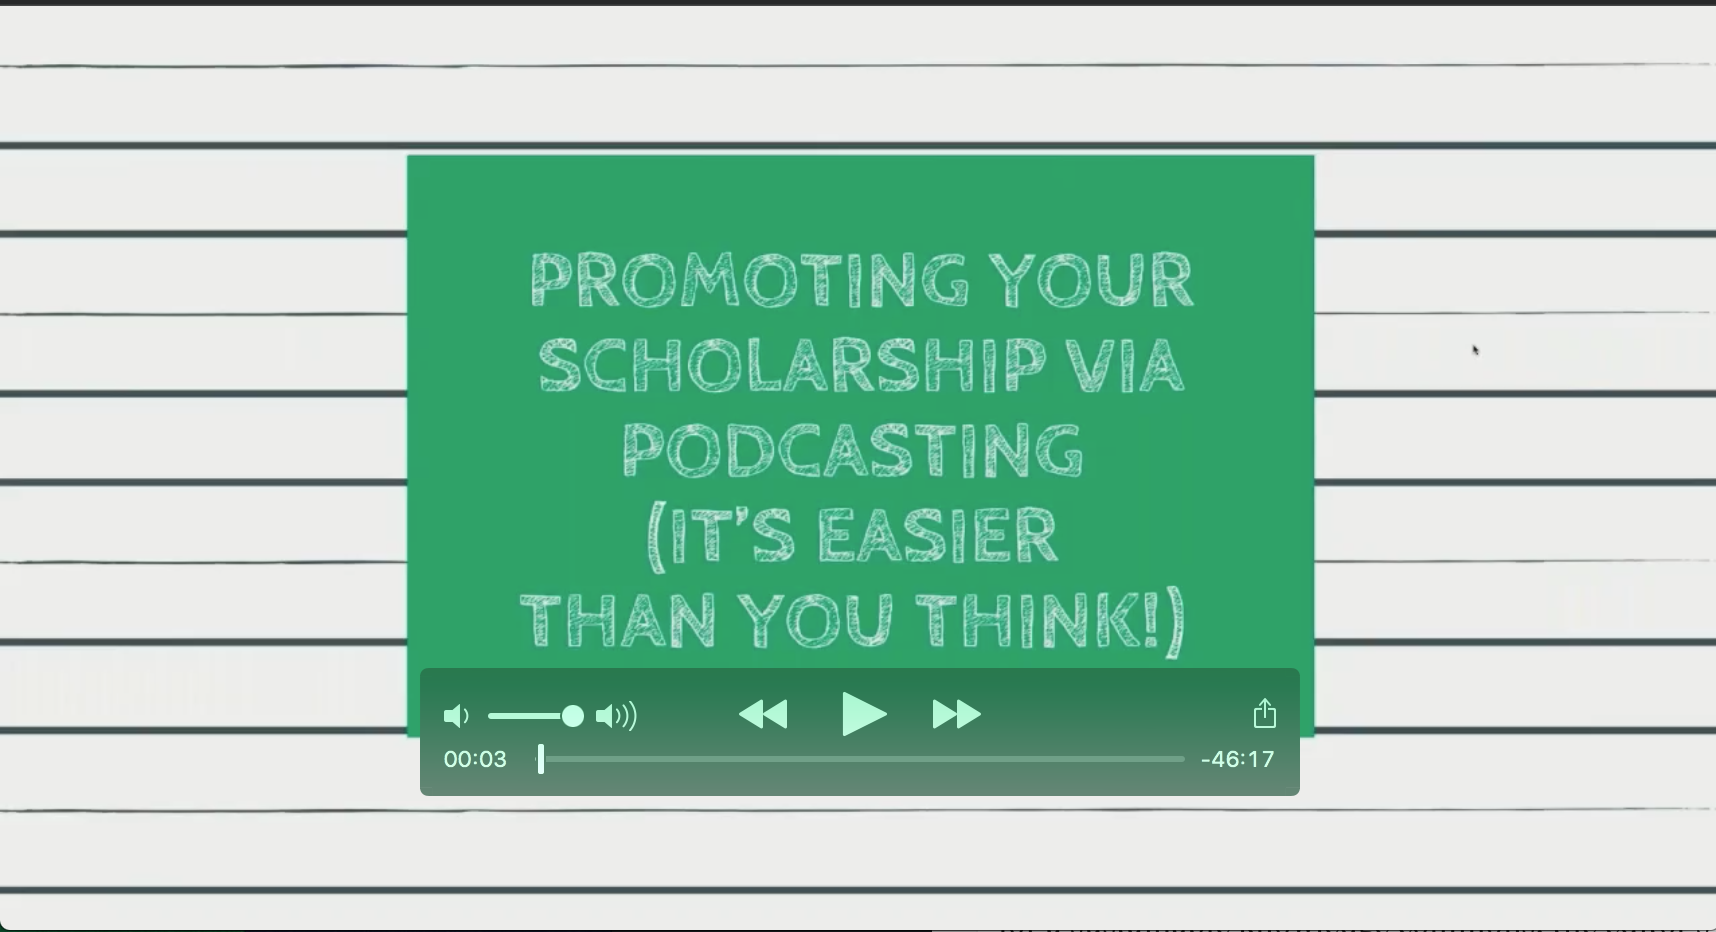 Promoting Your Scholarship Via Podcasting